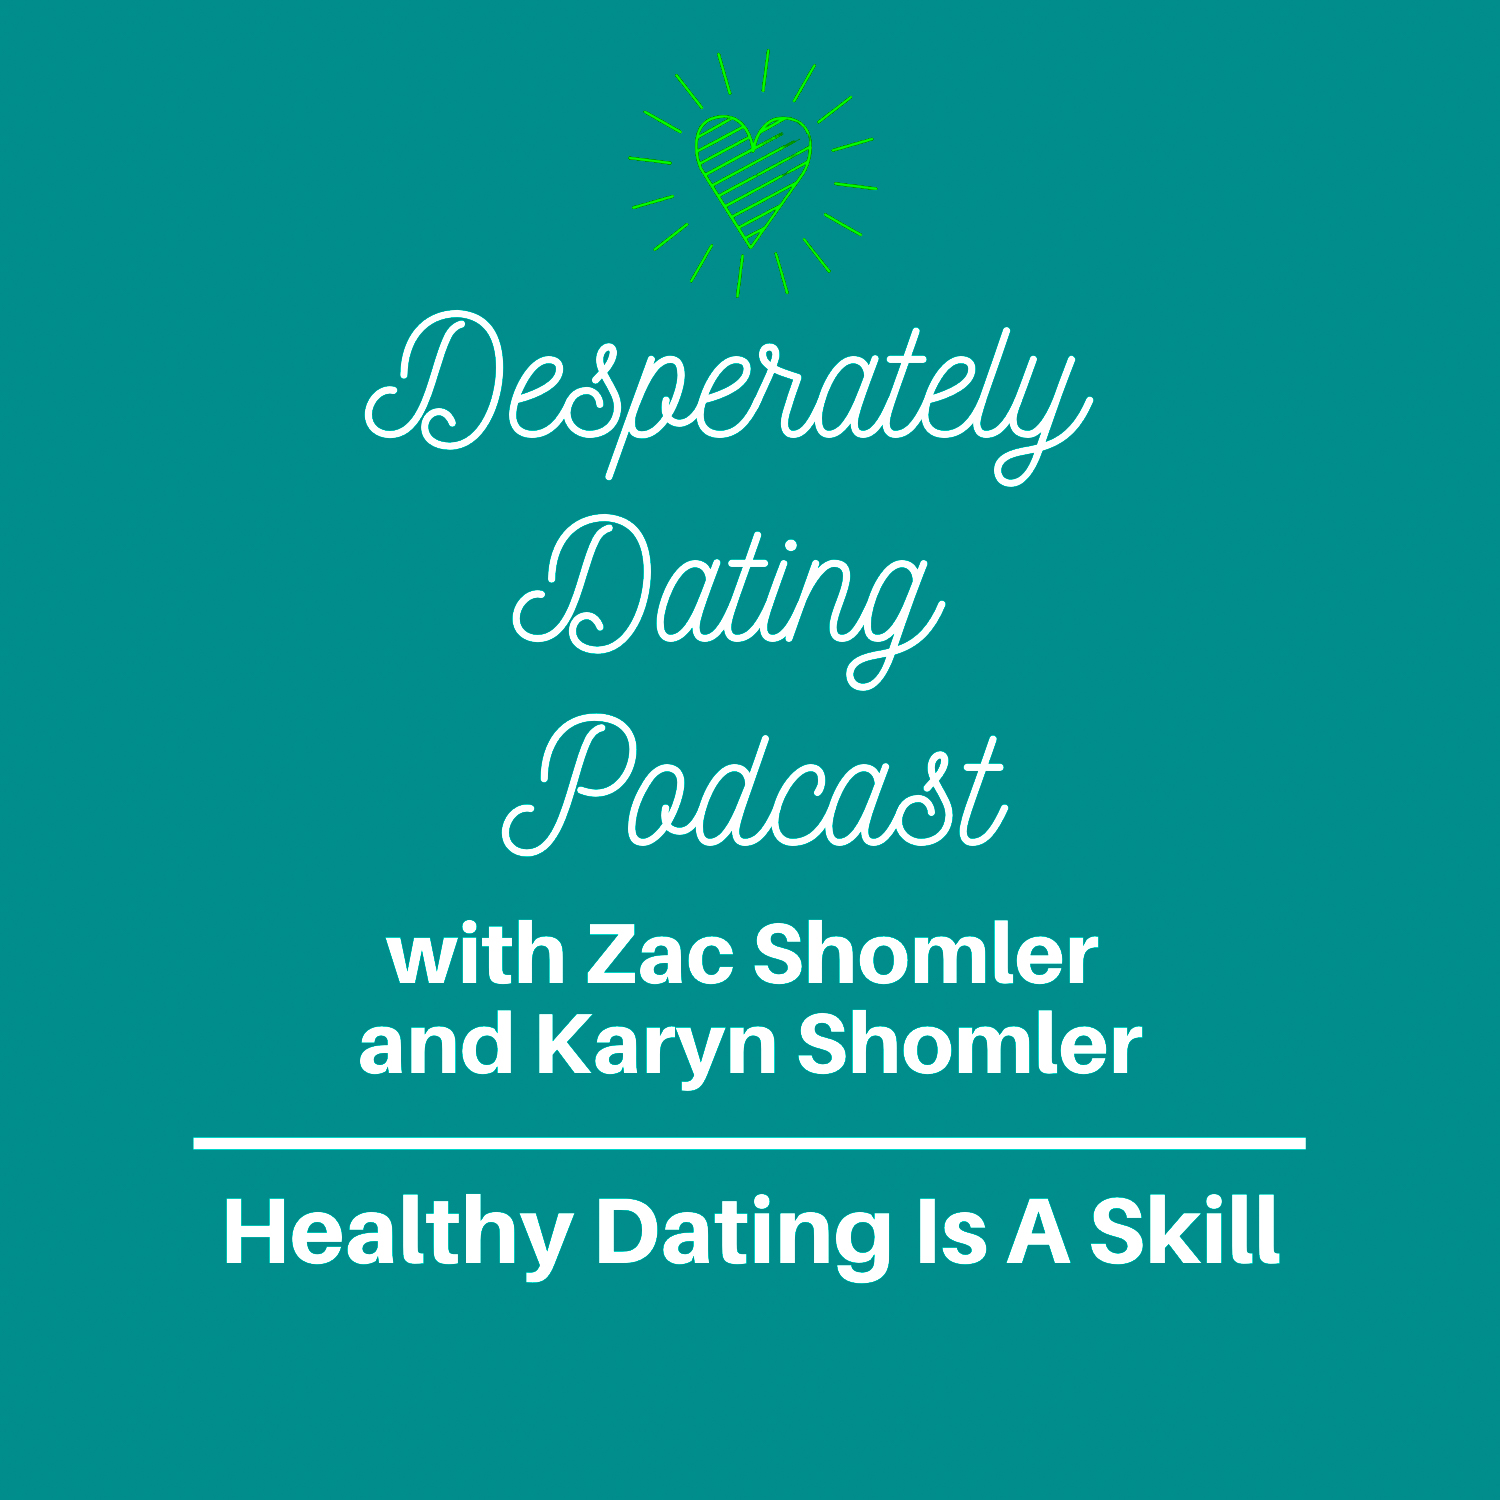 Healthy Dating Is A Skill -Desperately Dating Podcast Episode 6